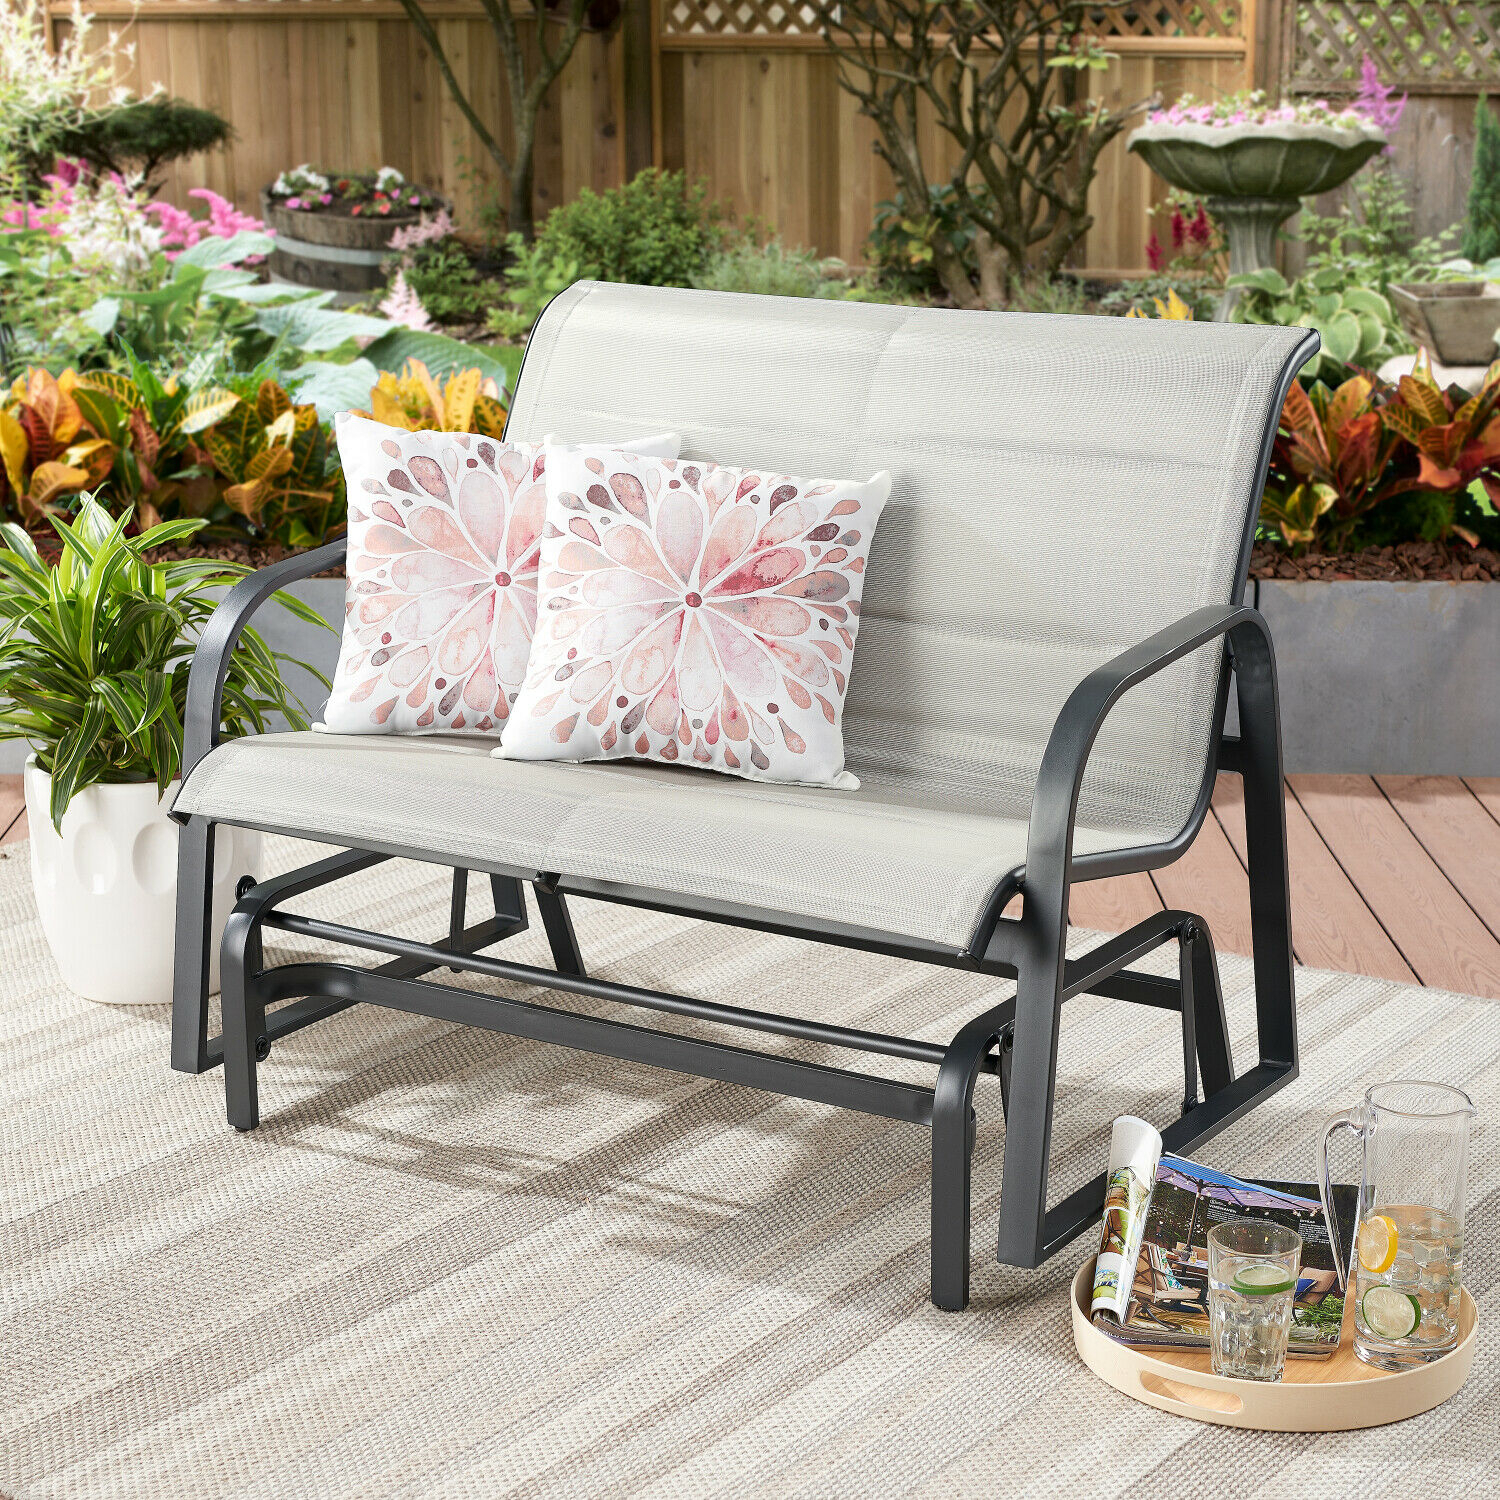 Montrose Padded Sling Glider Bench Outdoor Garden Patio Porch Furniture Chair Throughout Loveseat Glider Benches With Cushions (View 23 of 25)